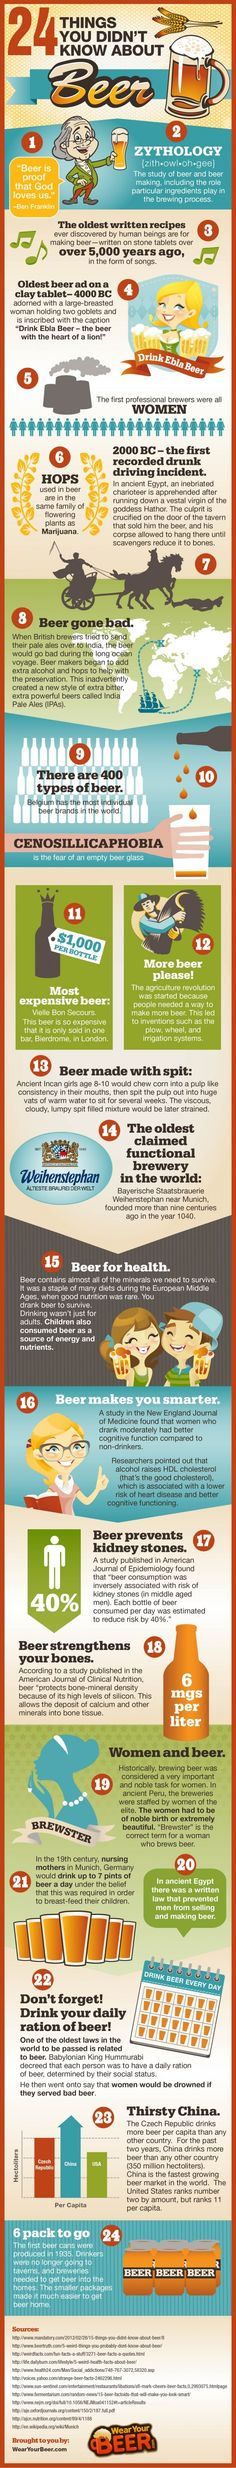 24 Things you didn't know about #beer - Discover more in this #infographic - http://finedininglovers.com/blog/food-drinks/beer-facts/